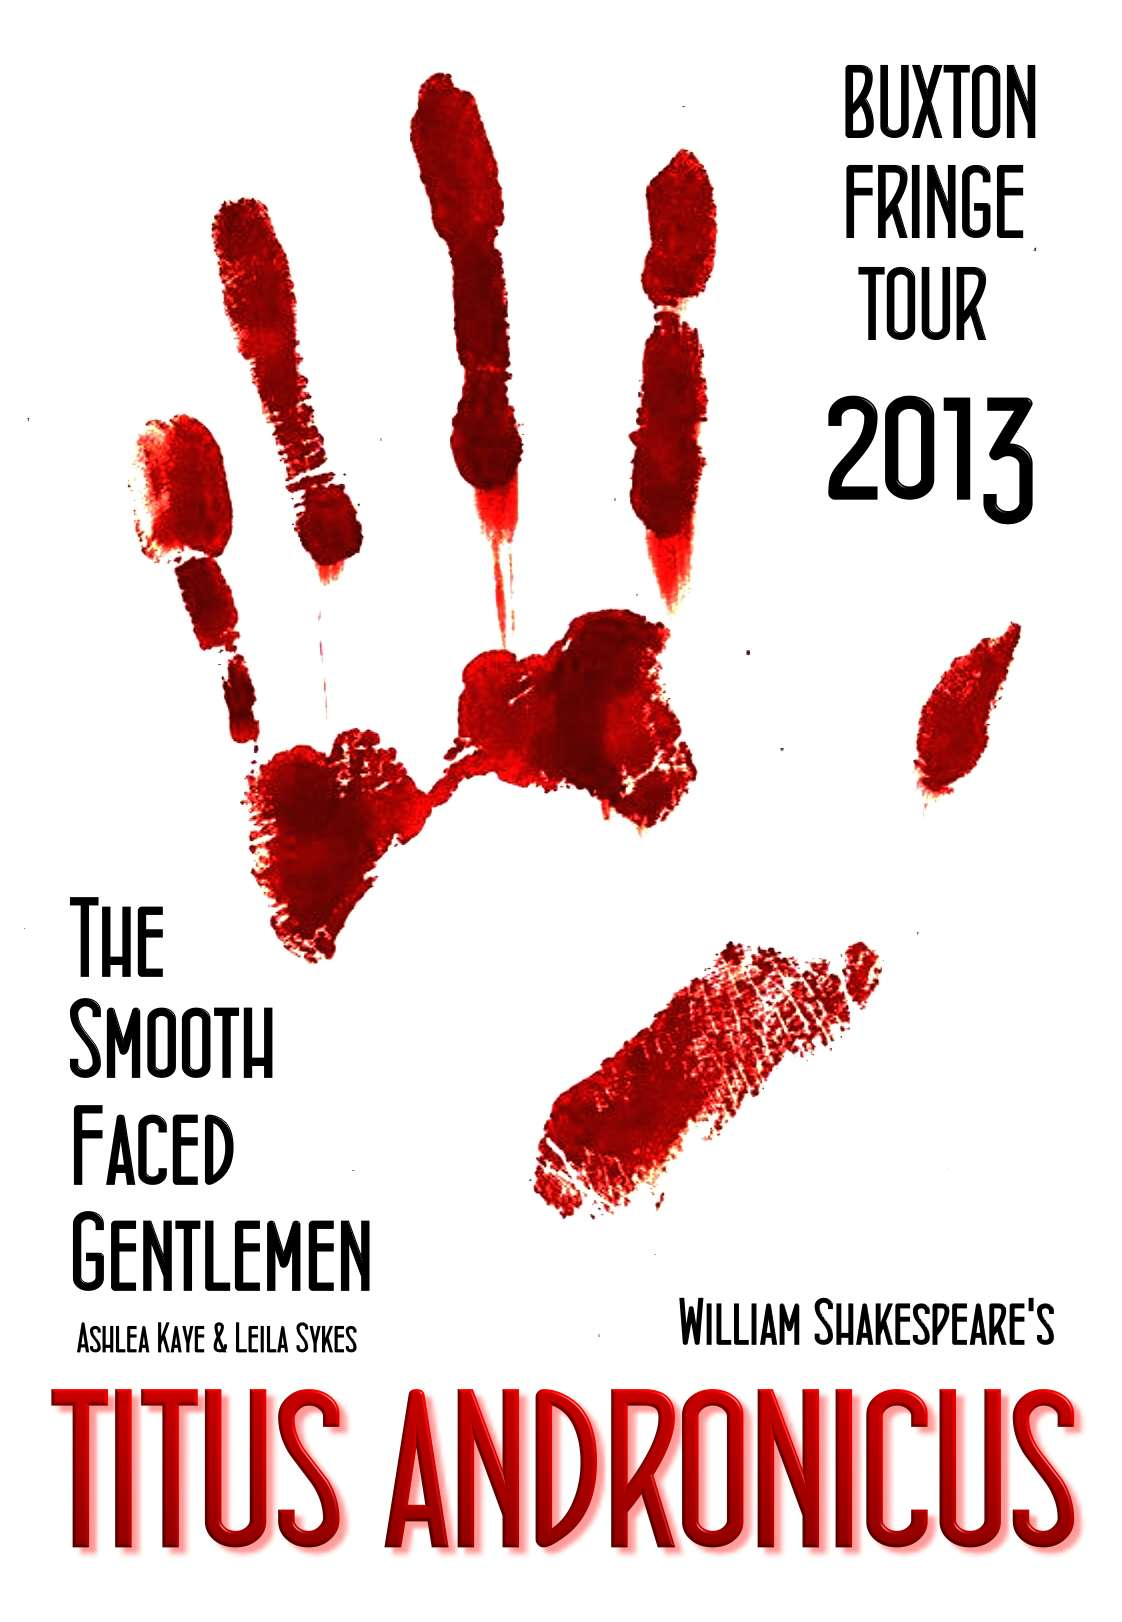 Titus Andronicus 2013 UK tour, The Edinburgh and Buxton Fringe, Smooth Faced Gentlemen